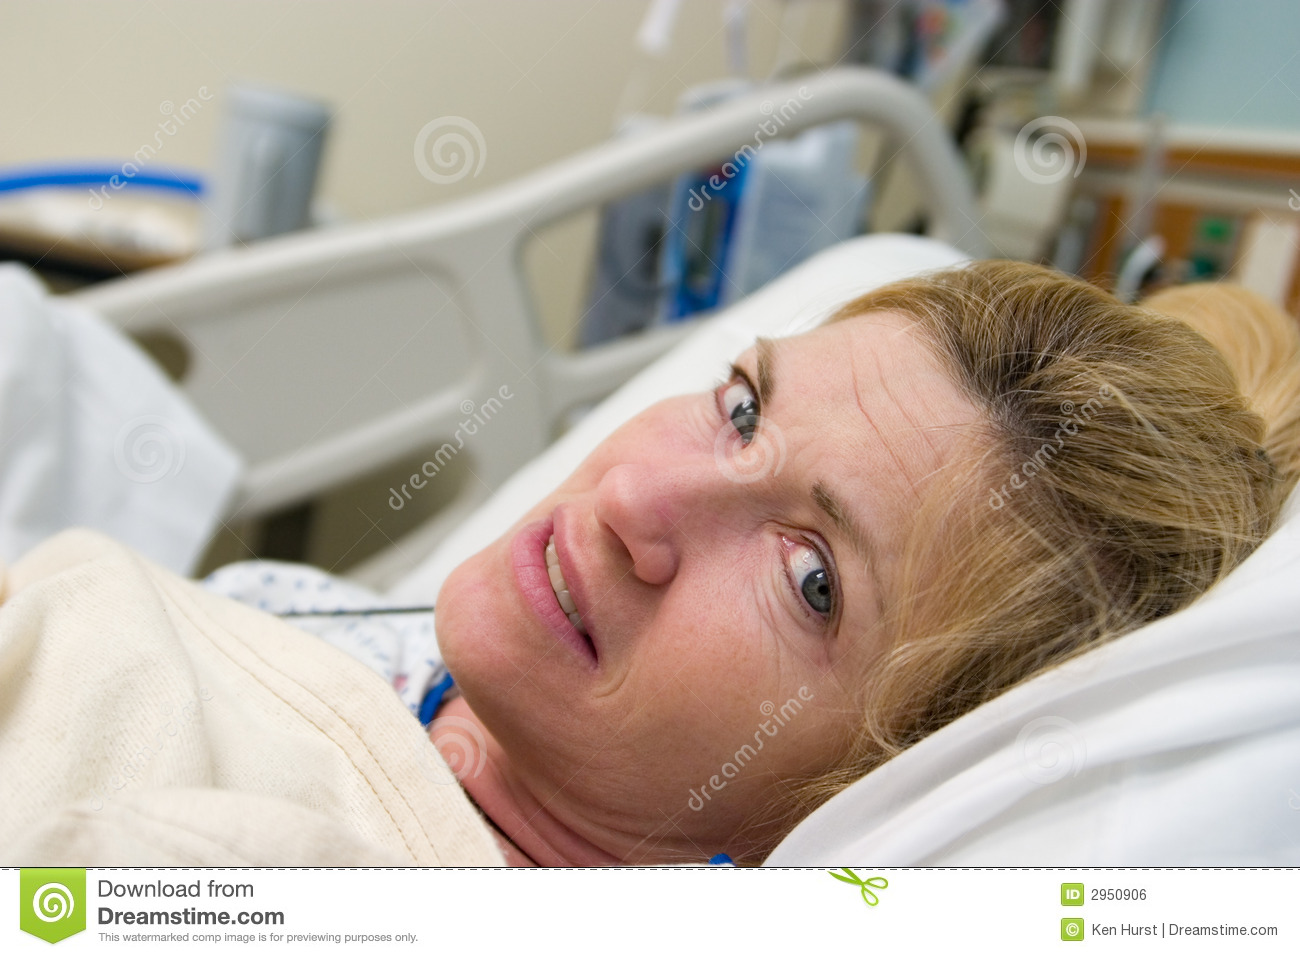 Sick Patient In Hospital Bed Royalty Free Stock Image - Image: 2950906